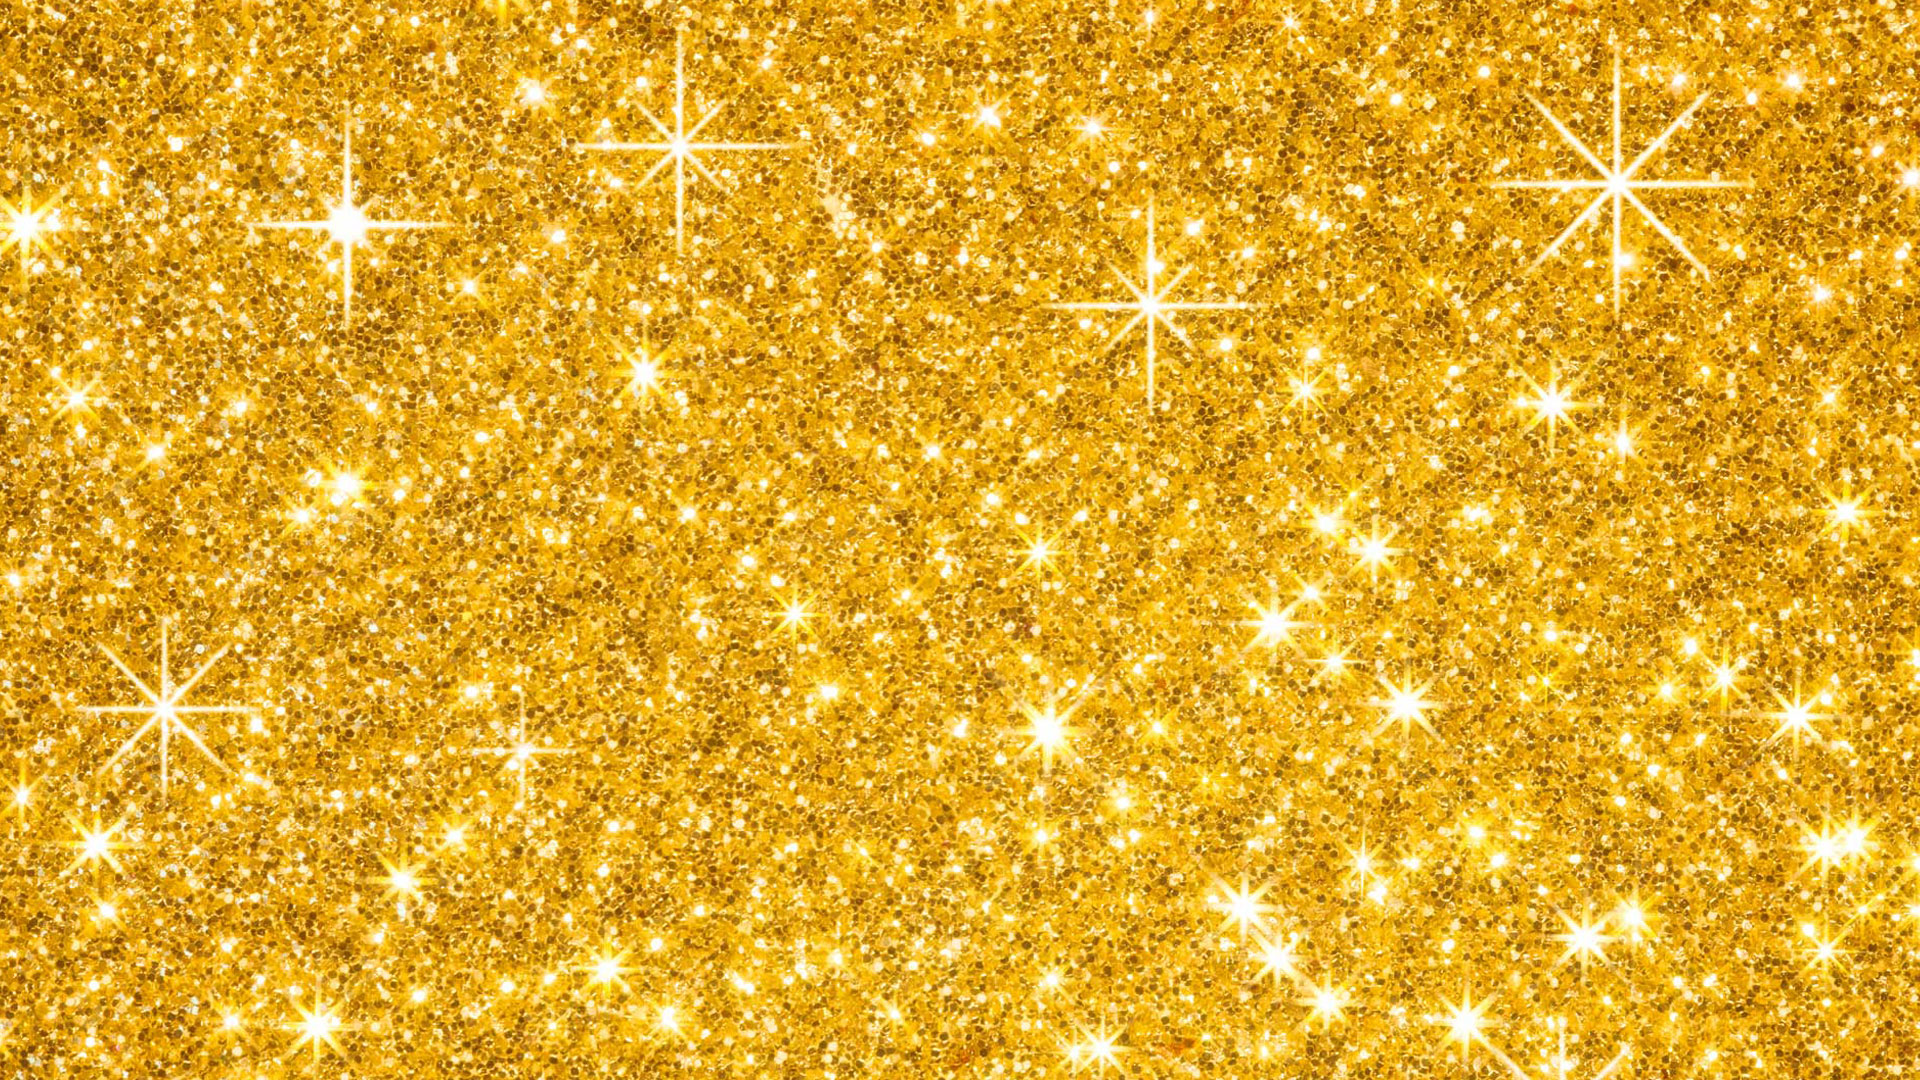 Gold Glitter Wallpaper HD For Desktop.